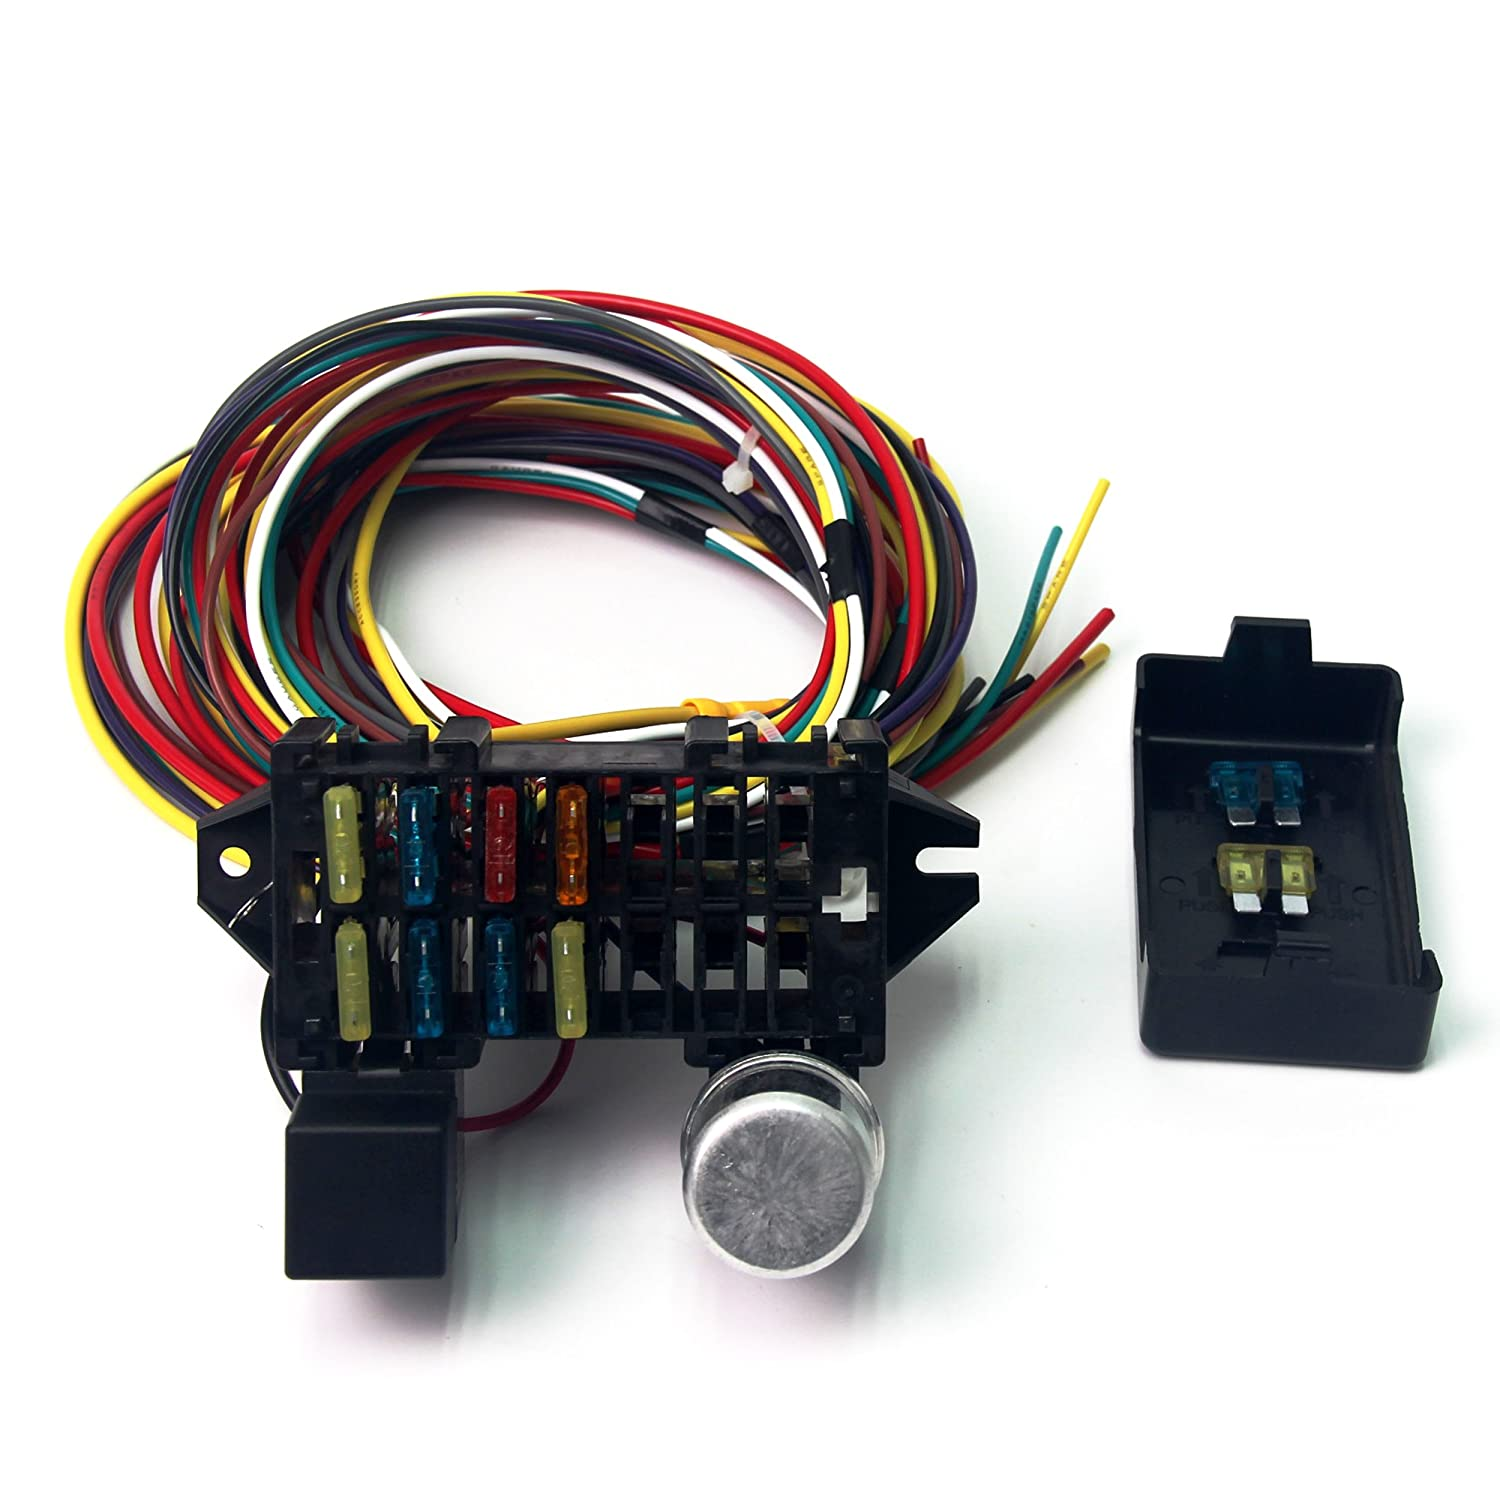 818OhNpuI4L._SL1500_ amazon com wisamic 10 circuit basic wiring harness fuse box Painless Wiring at gsmx.co